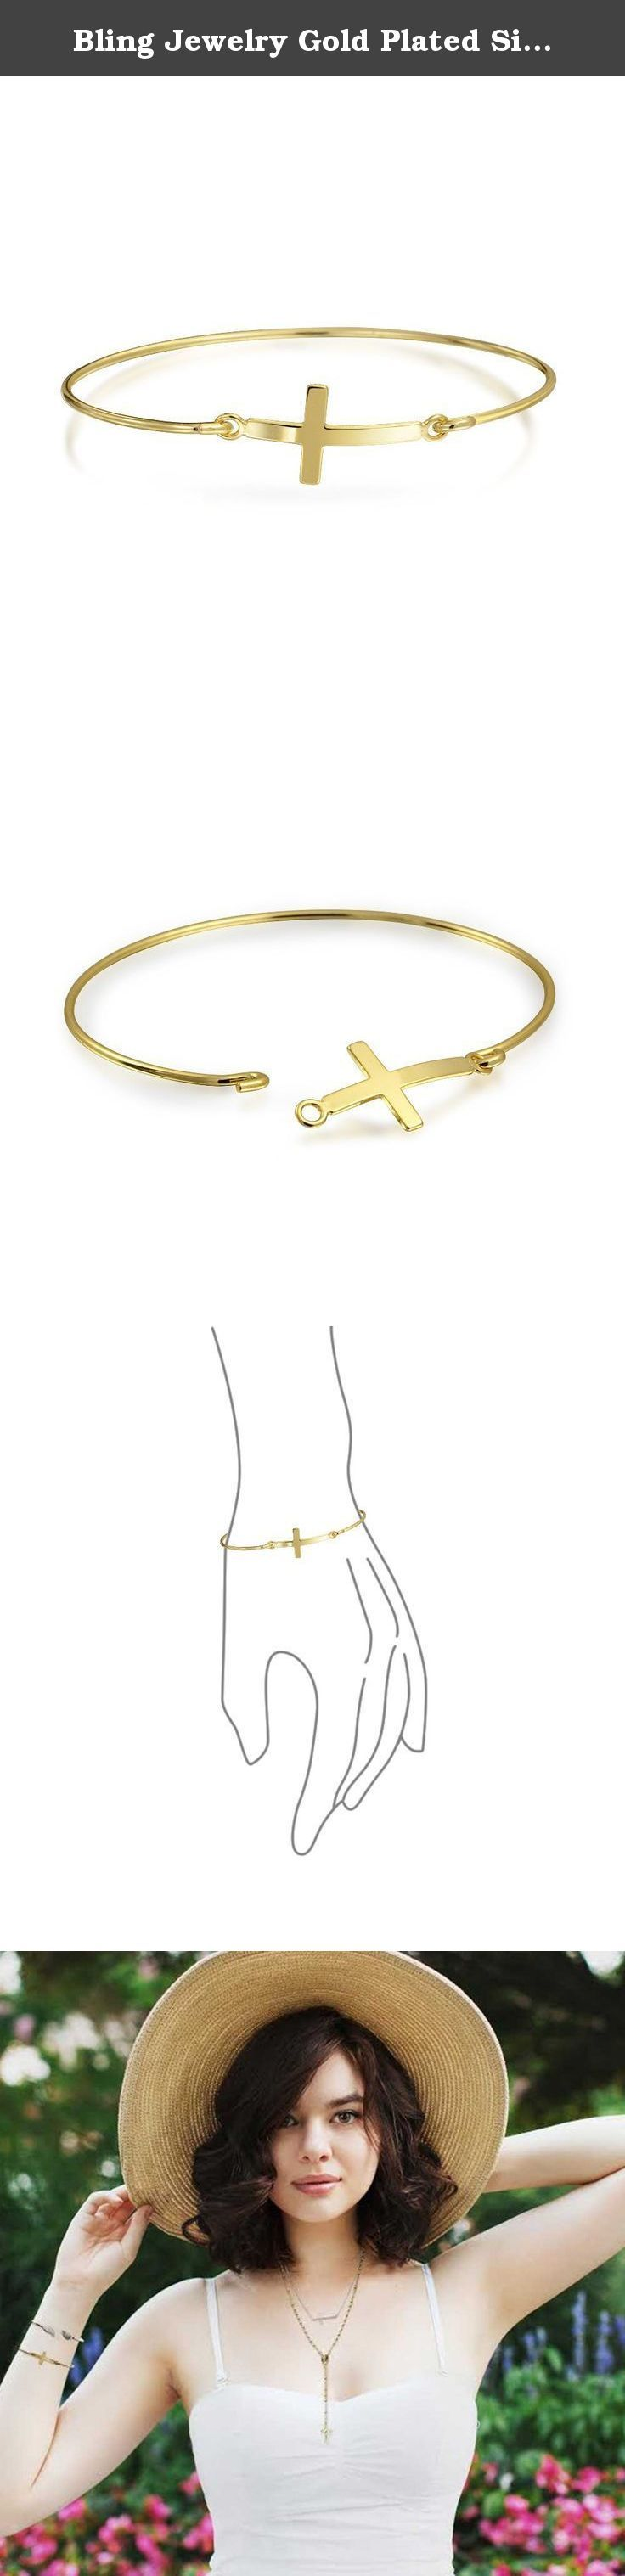 Bling Jewelry Gold Plated Silver Sideways Cross Stackable Bangle Bracelet. If you are looking to add a hint of subtle spirituality to your wrist this season, our gold plated sideways cross bracelet is a perfect Christmas gift. A sideways cross is front and center on our new sterling silver bangle bracelet to create this lovely piece of religious jewelry for her. Works well solo or paired with silver stacking bracelets.